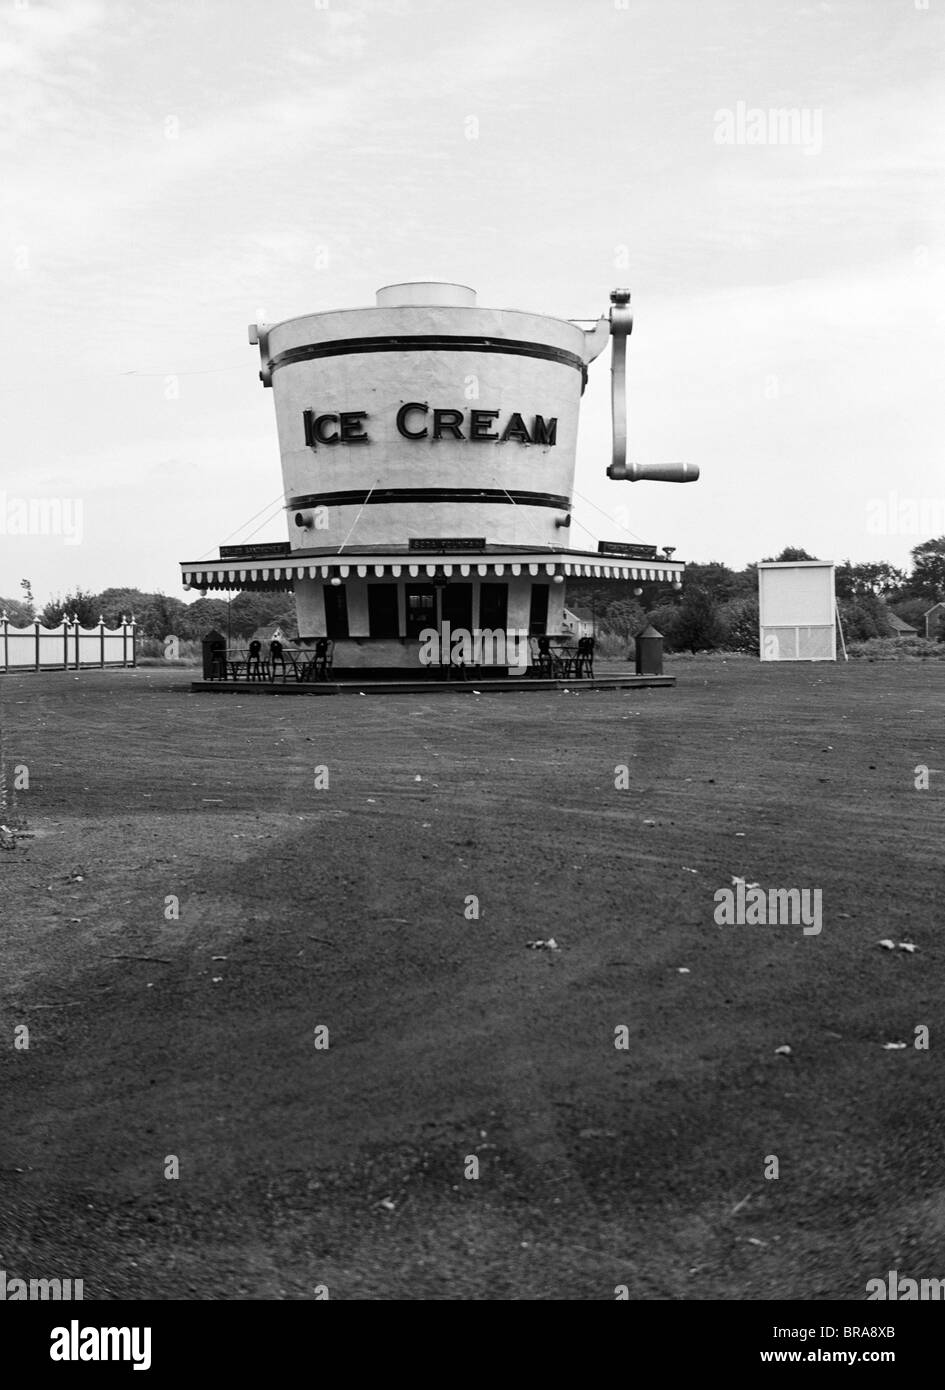 1937 1930s ROADSIDE REFRESHMENT STAND SHAPED LIKE ICE CREAM MAKER - Stock Image